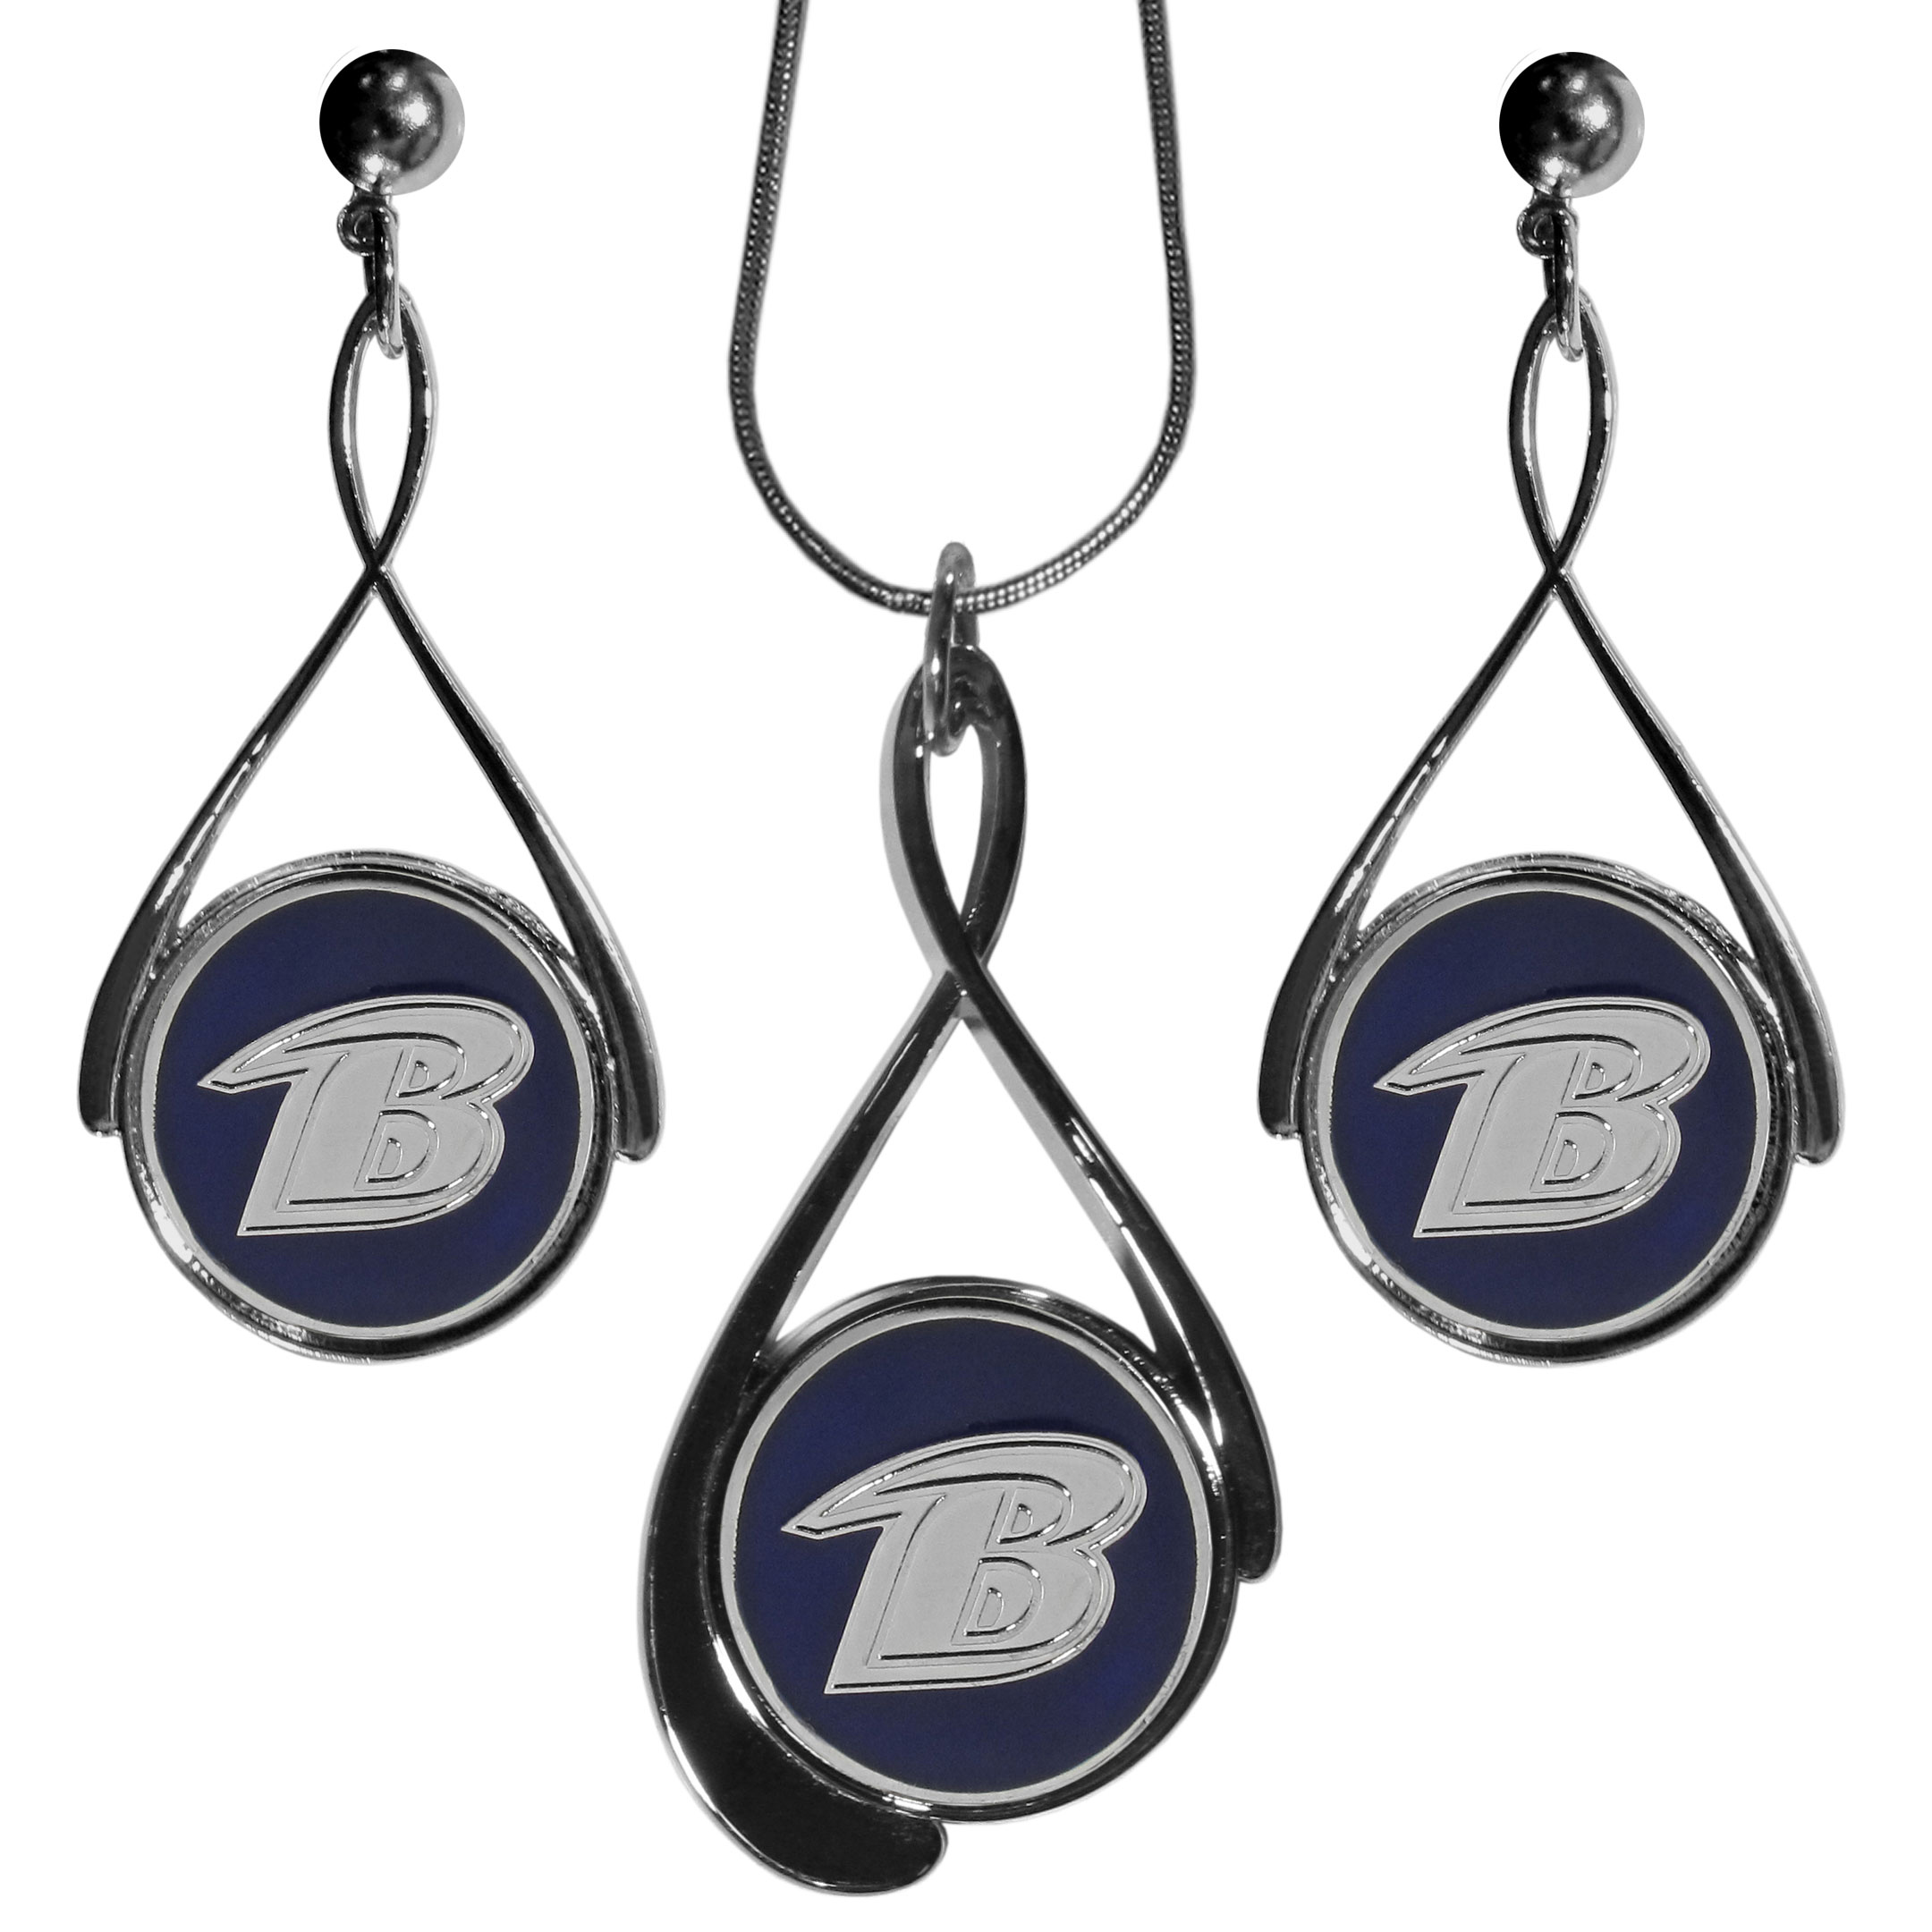 Baltimore Ravens Tear Drop Jewelry Set - Our Baltimore Ravens tear drop earrings and necklace set is a sporty twist on the classic tear drop style. The high polish dangle earrings feature the team logo in raised metal against the primary team color inset into the 2 inch tear drop setting paired with a beautiful matching necklace with a 18 inch snake chain with 2 inch extendor. The earrings have hypoallergenic stud posts.